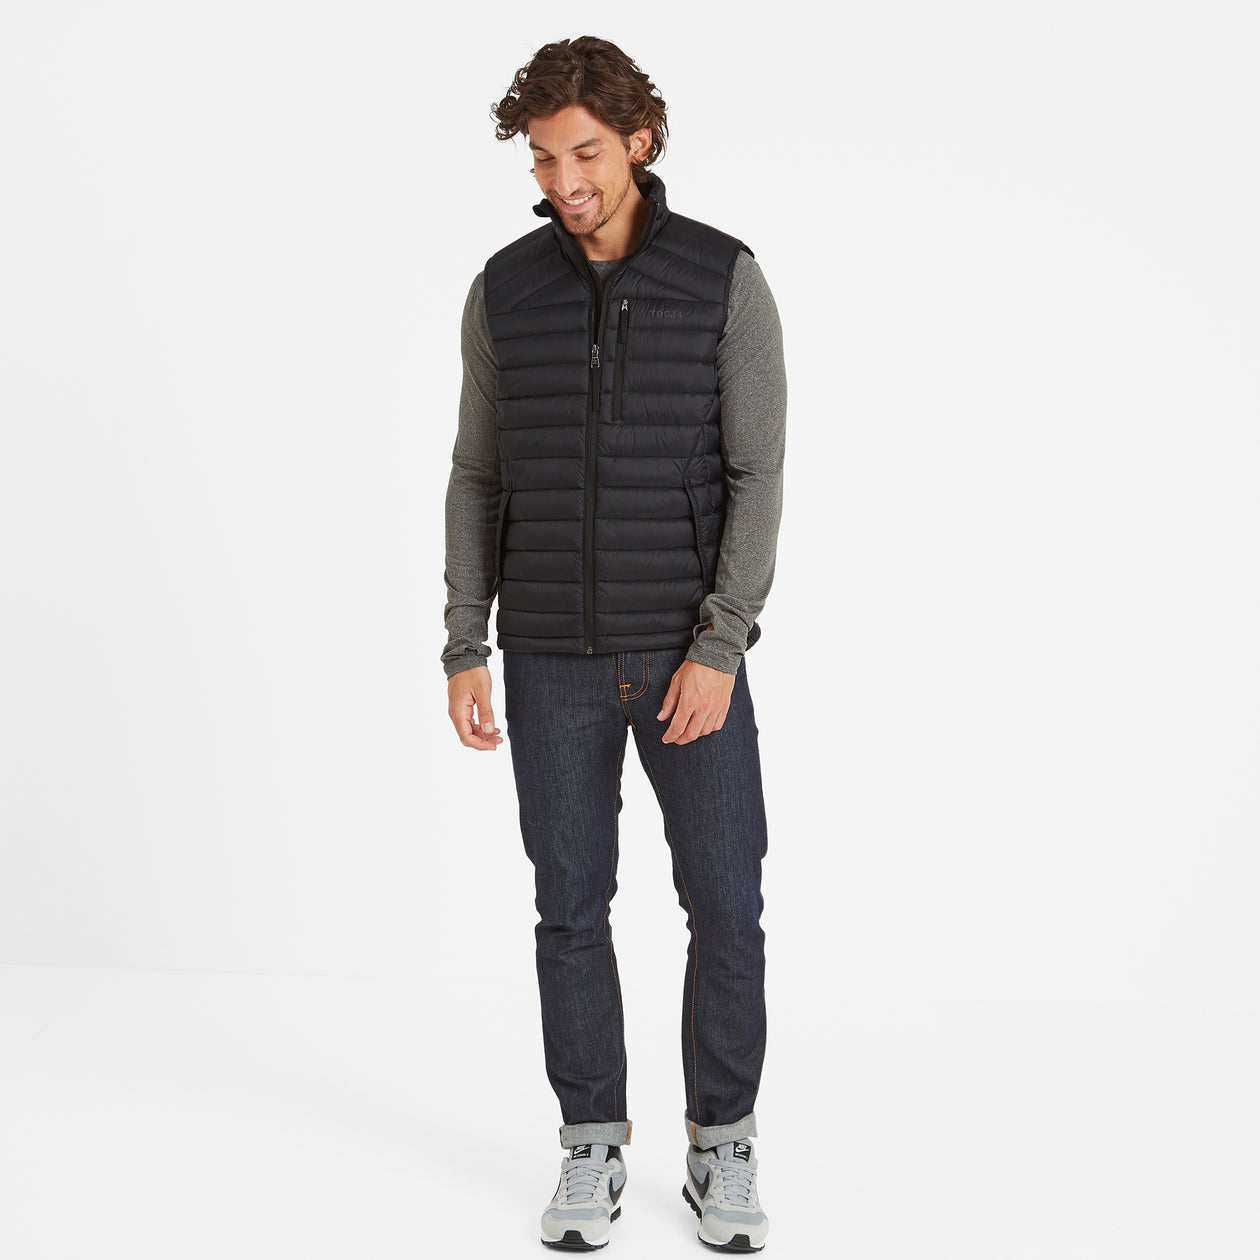 Drax Mens Down Gilet - Black image 4